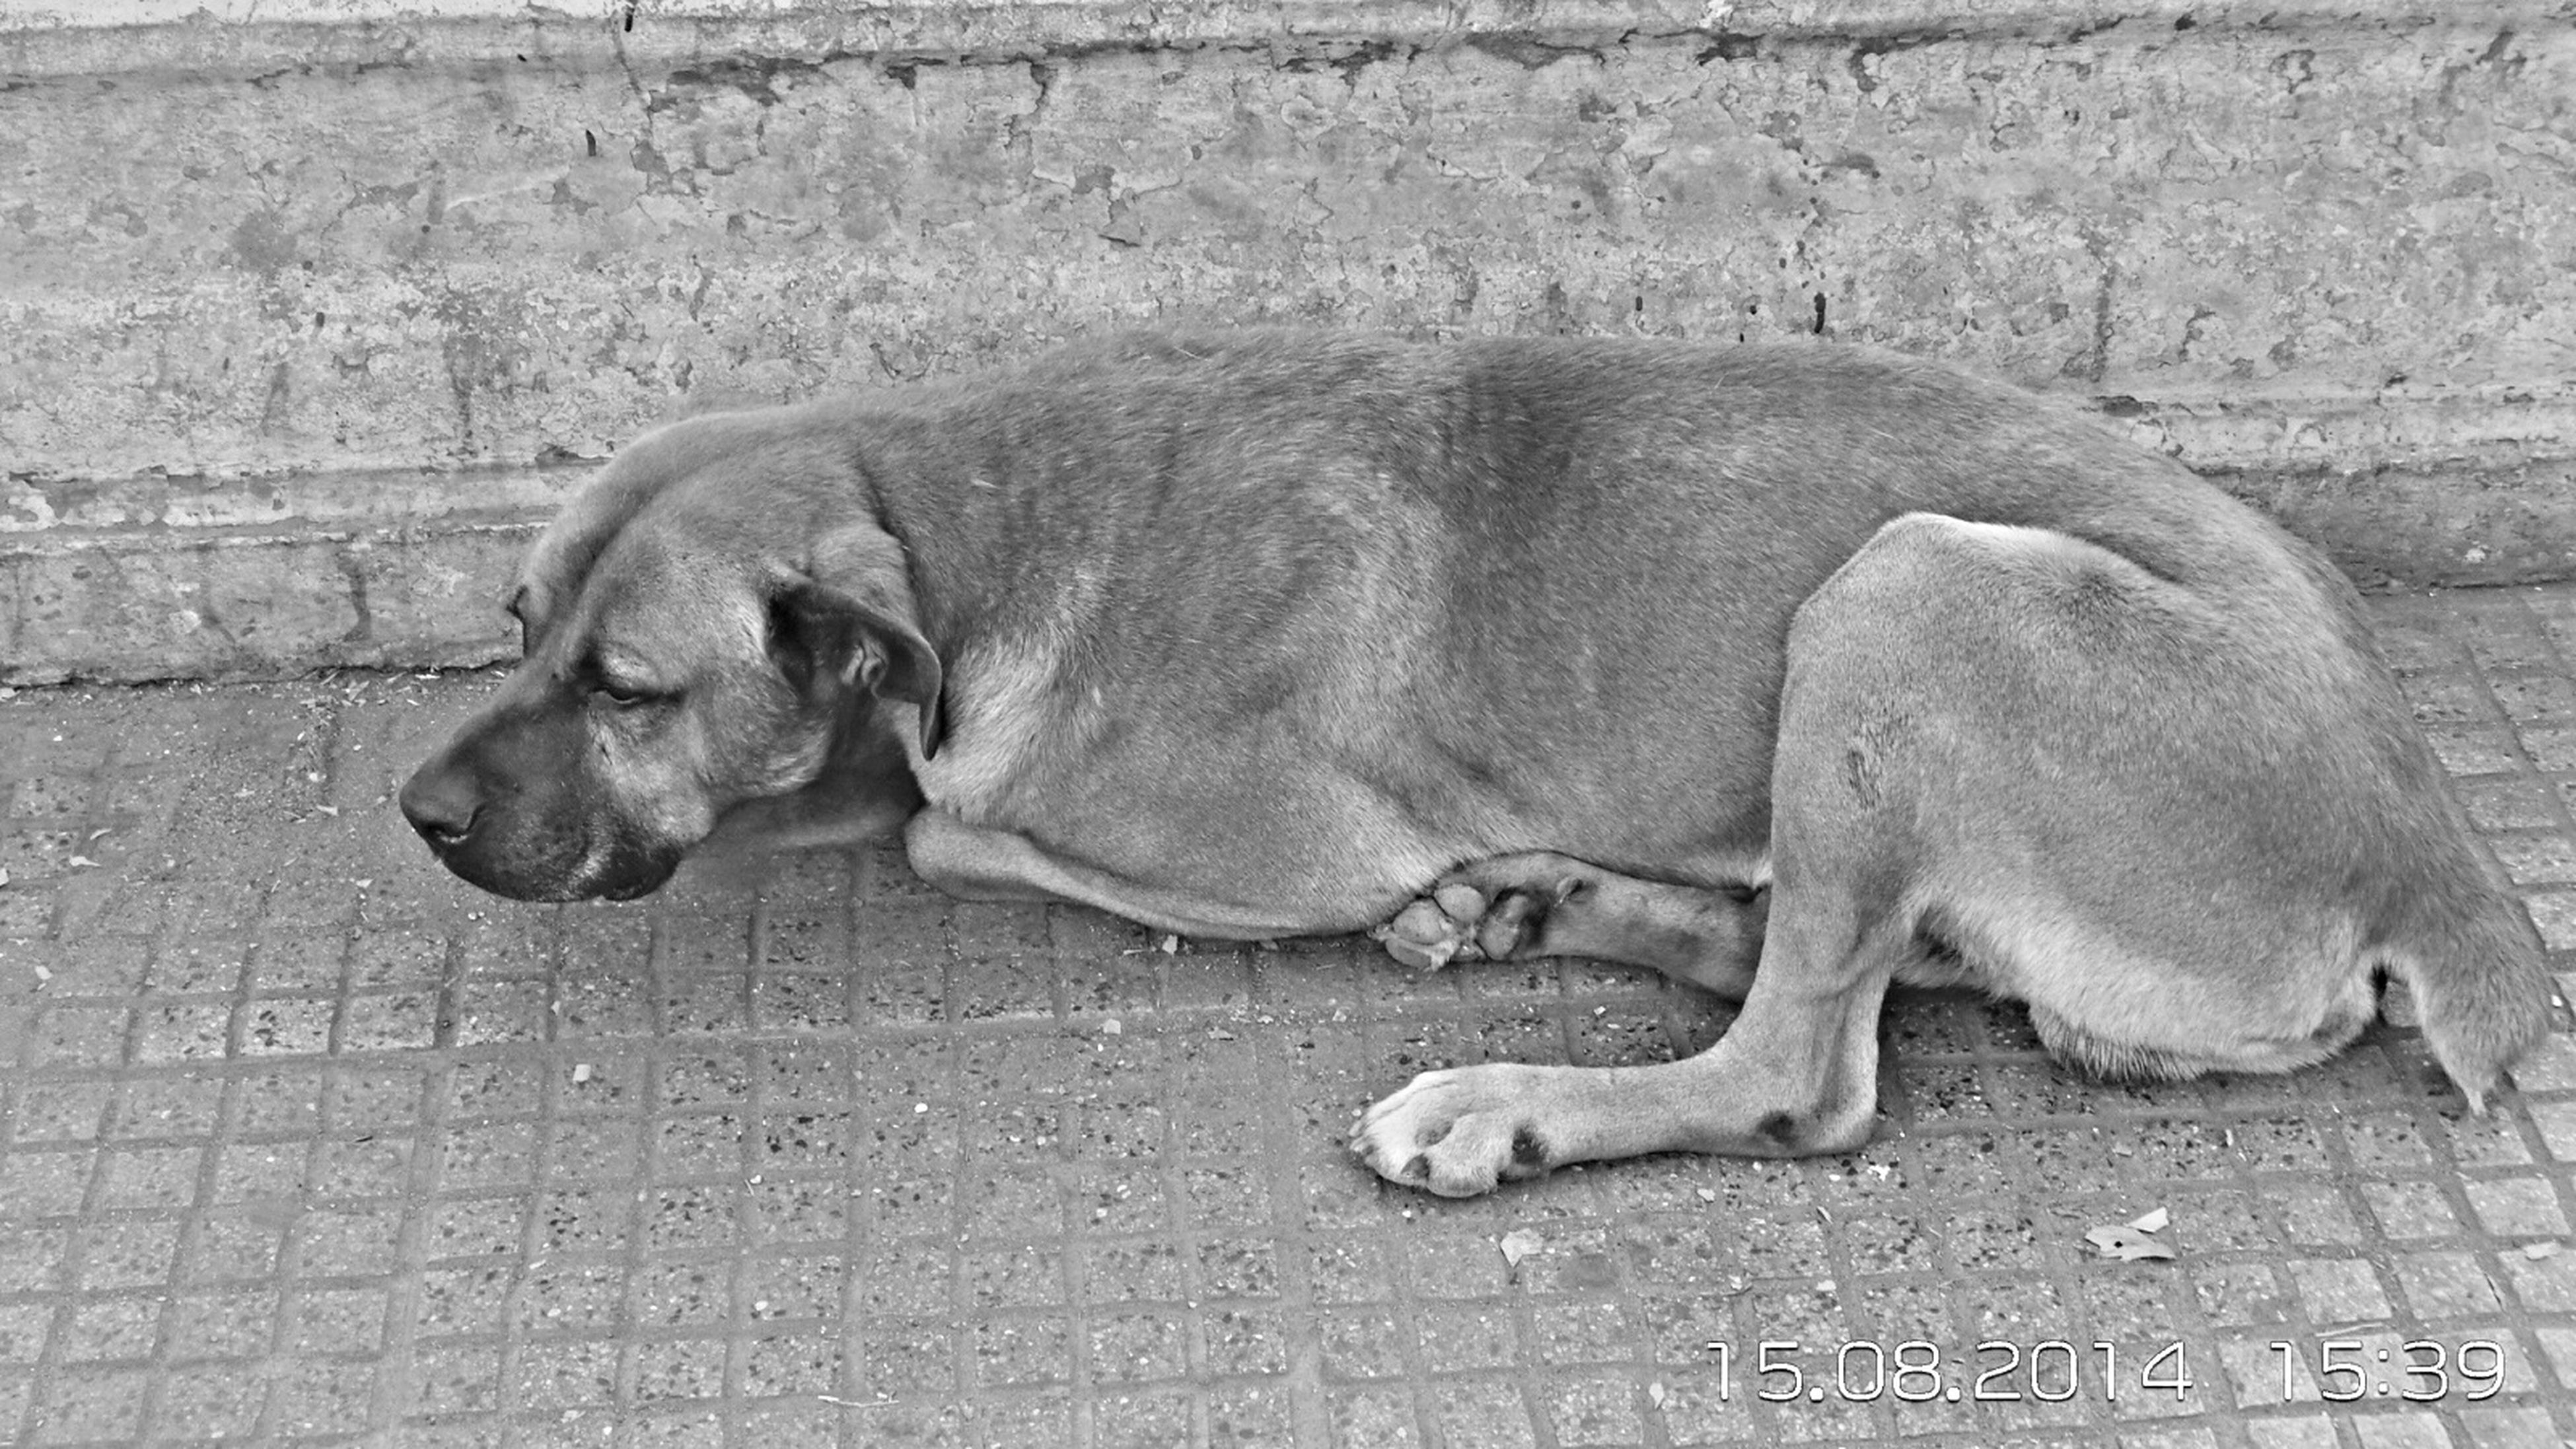 animal themes, mammal, one animal, dog, domestic animals, relaxation, two animals, full length, high angle view, sleeping, resting, lying down, pets, wildlife, day, no people, outdoors, animals in the wild, zoology, sitting